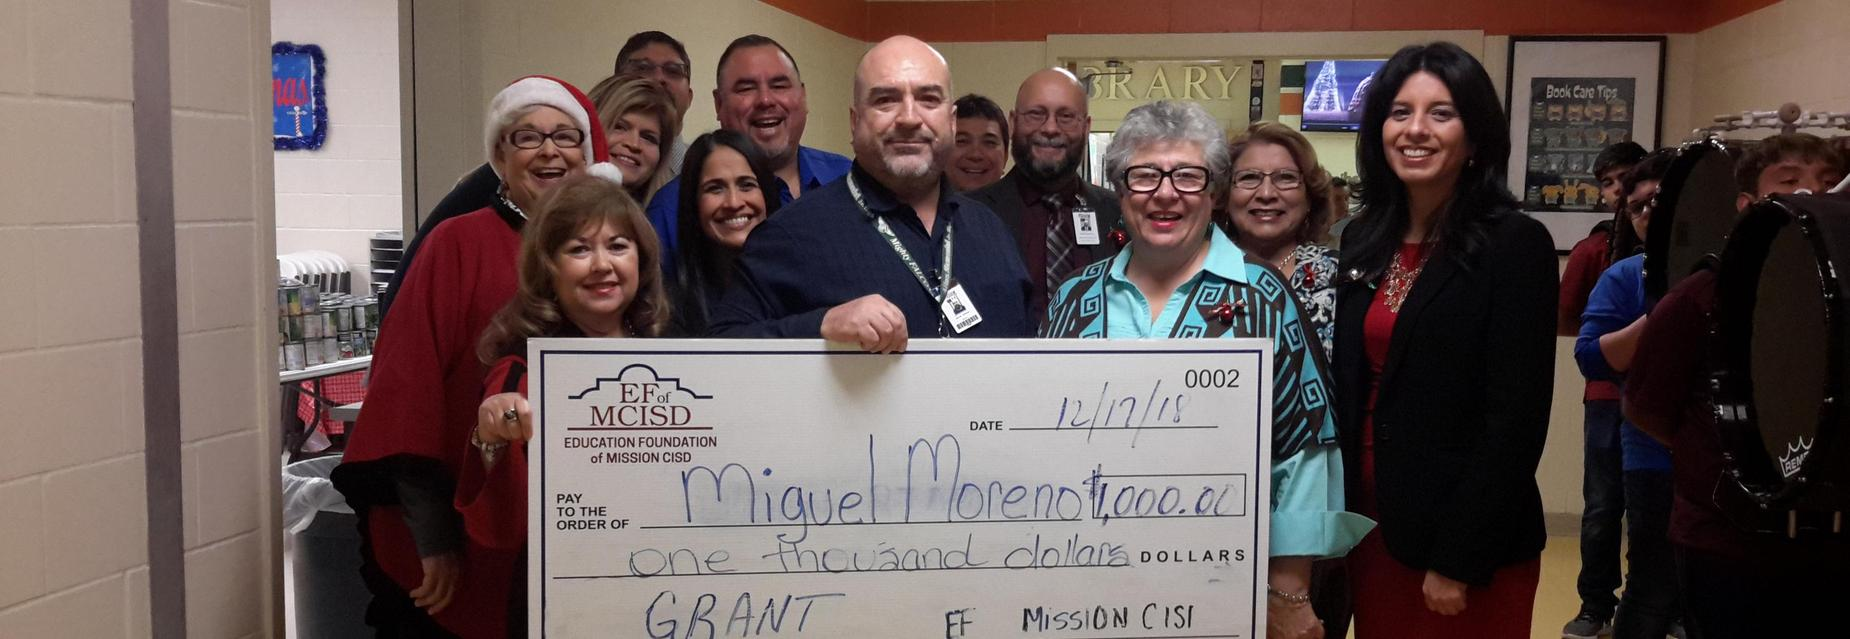 Mr. Moreno, AMJH Parent liaison receives $1,000 Mission Education Foundation grant